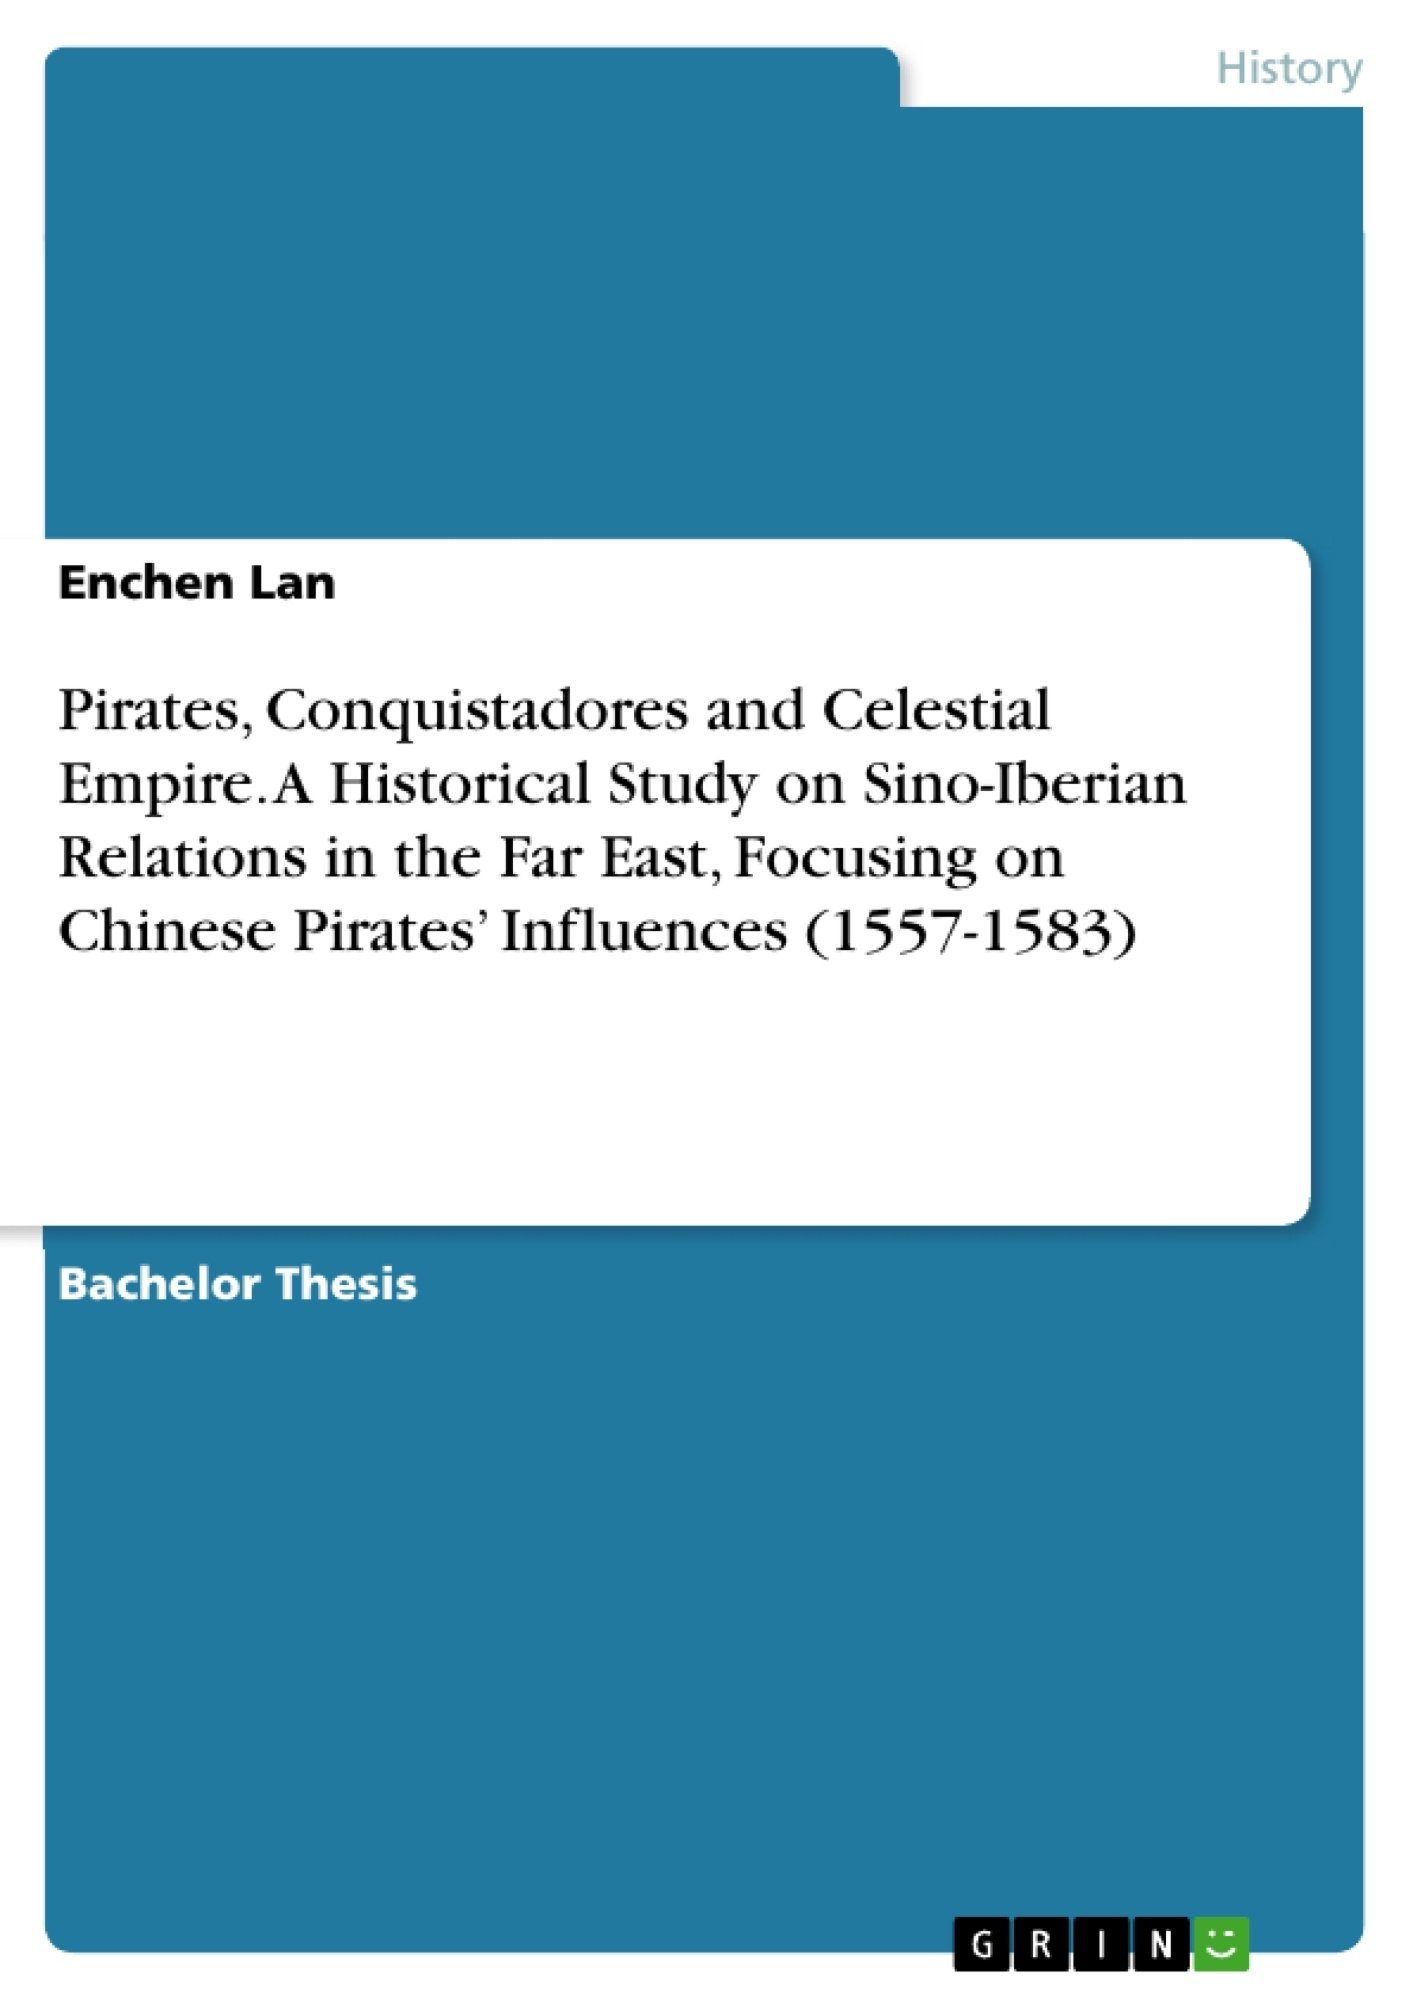 Title: Pirates, Conquistadores and Celestial Empire. A Historical Study on Sino-Iberian Relations in the Far East, Focusing on Chinese Pirates' Influences (1557-1583)